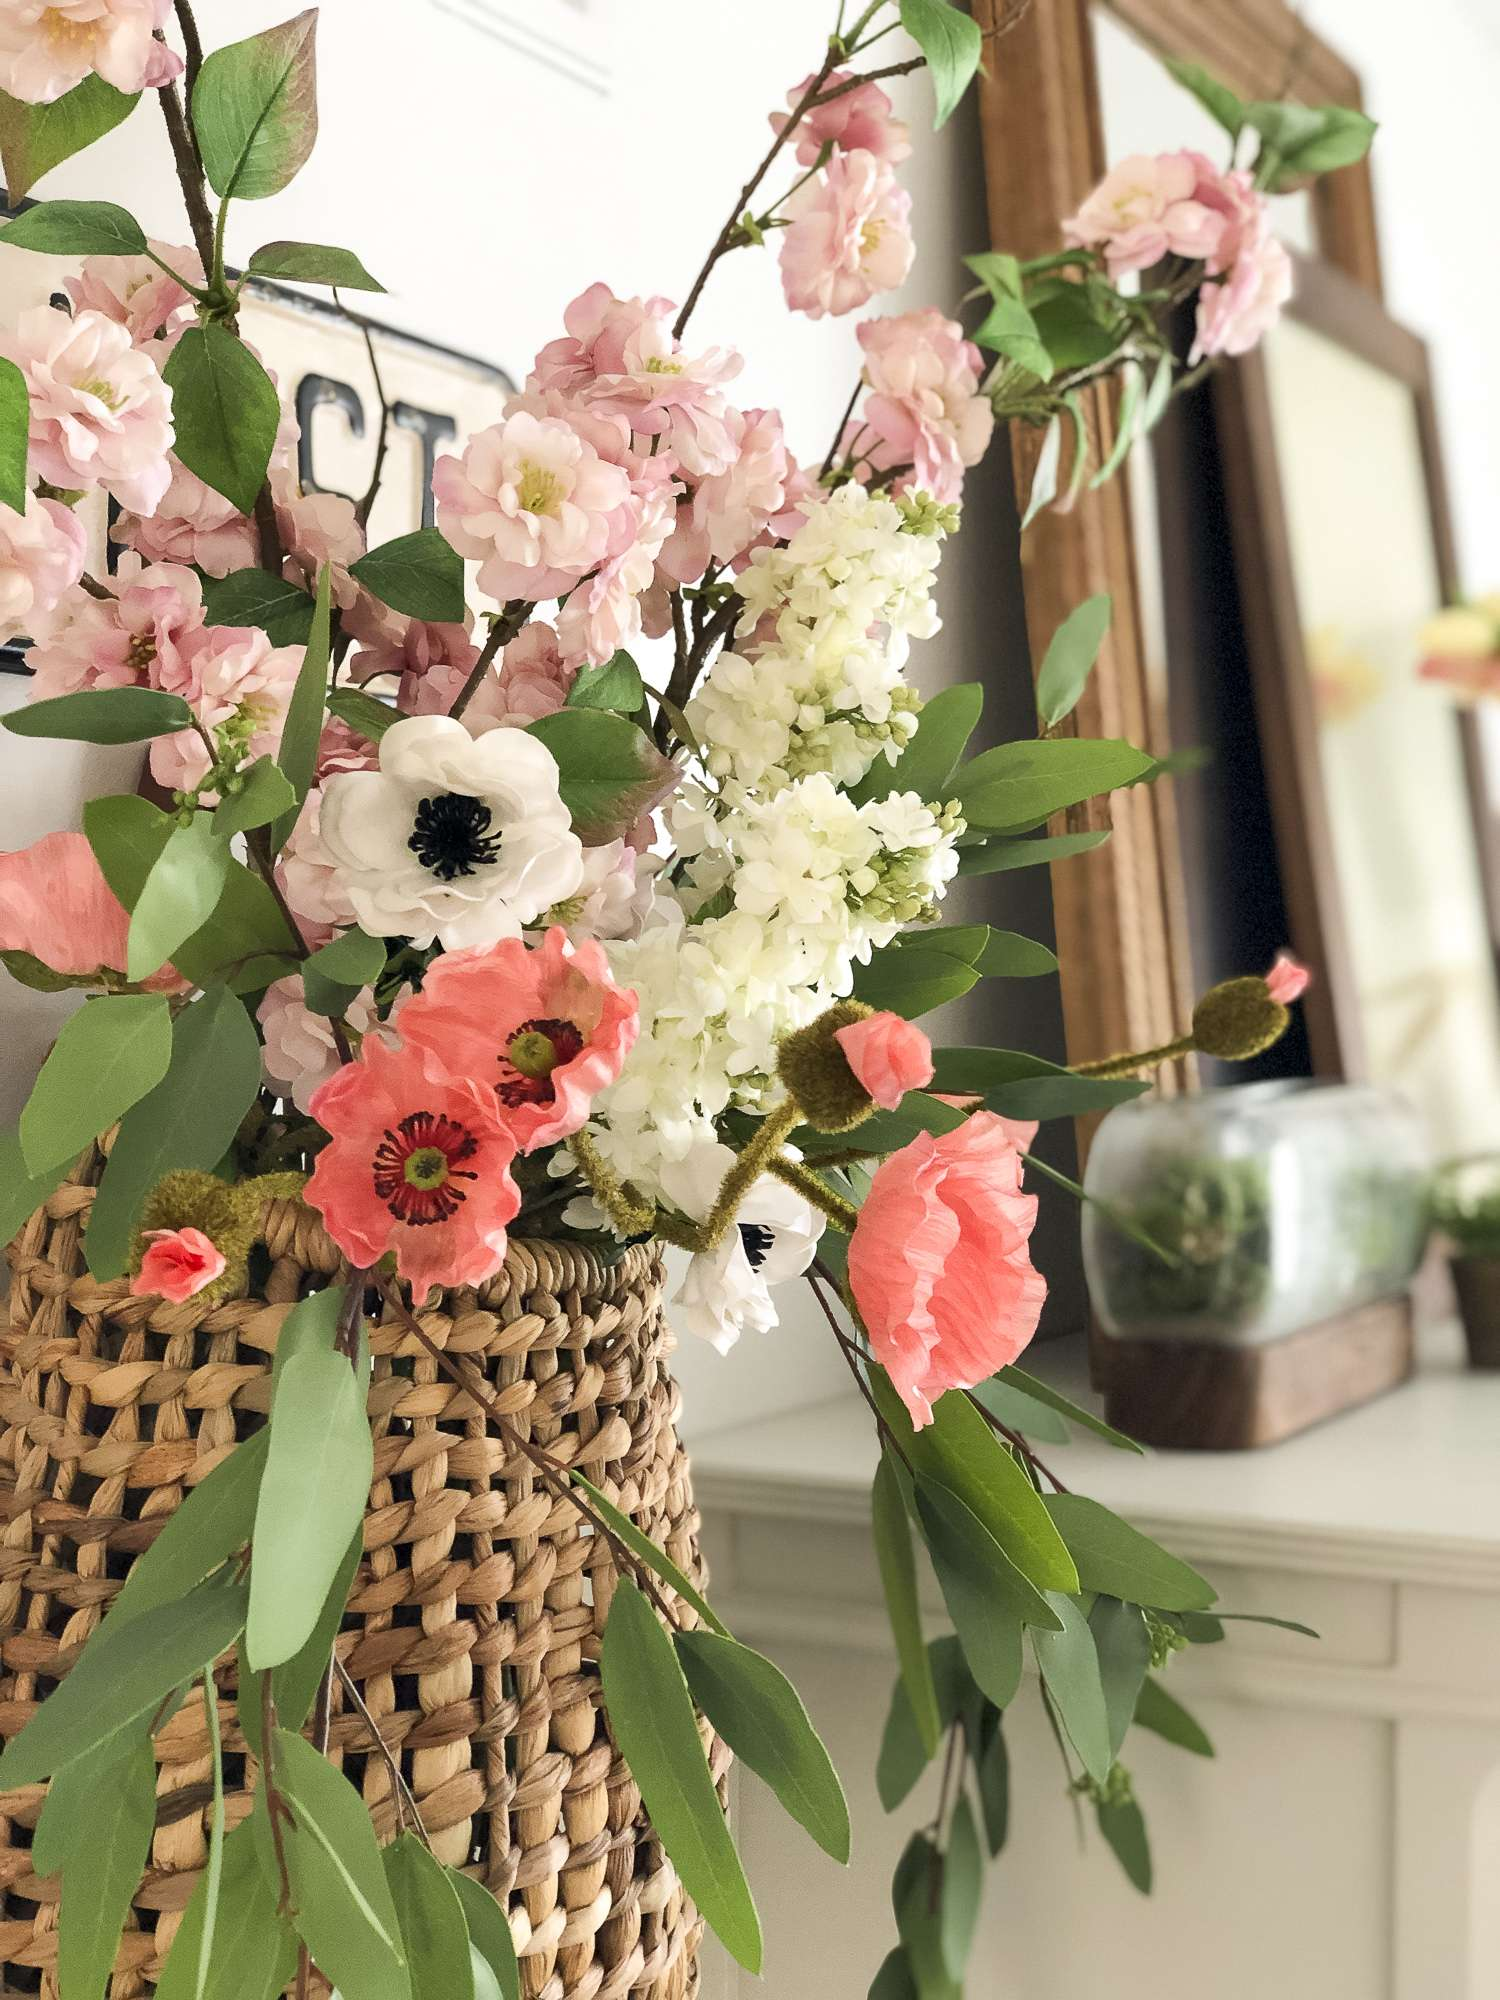 Are you trying to arrange faux flowers without having to stick to the traditional vase arrangement? See 5 non-traditional ways to arrange faux flowers! #fromhousetohaven #fauxflowers #artificialflowers